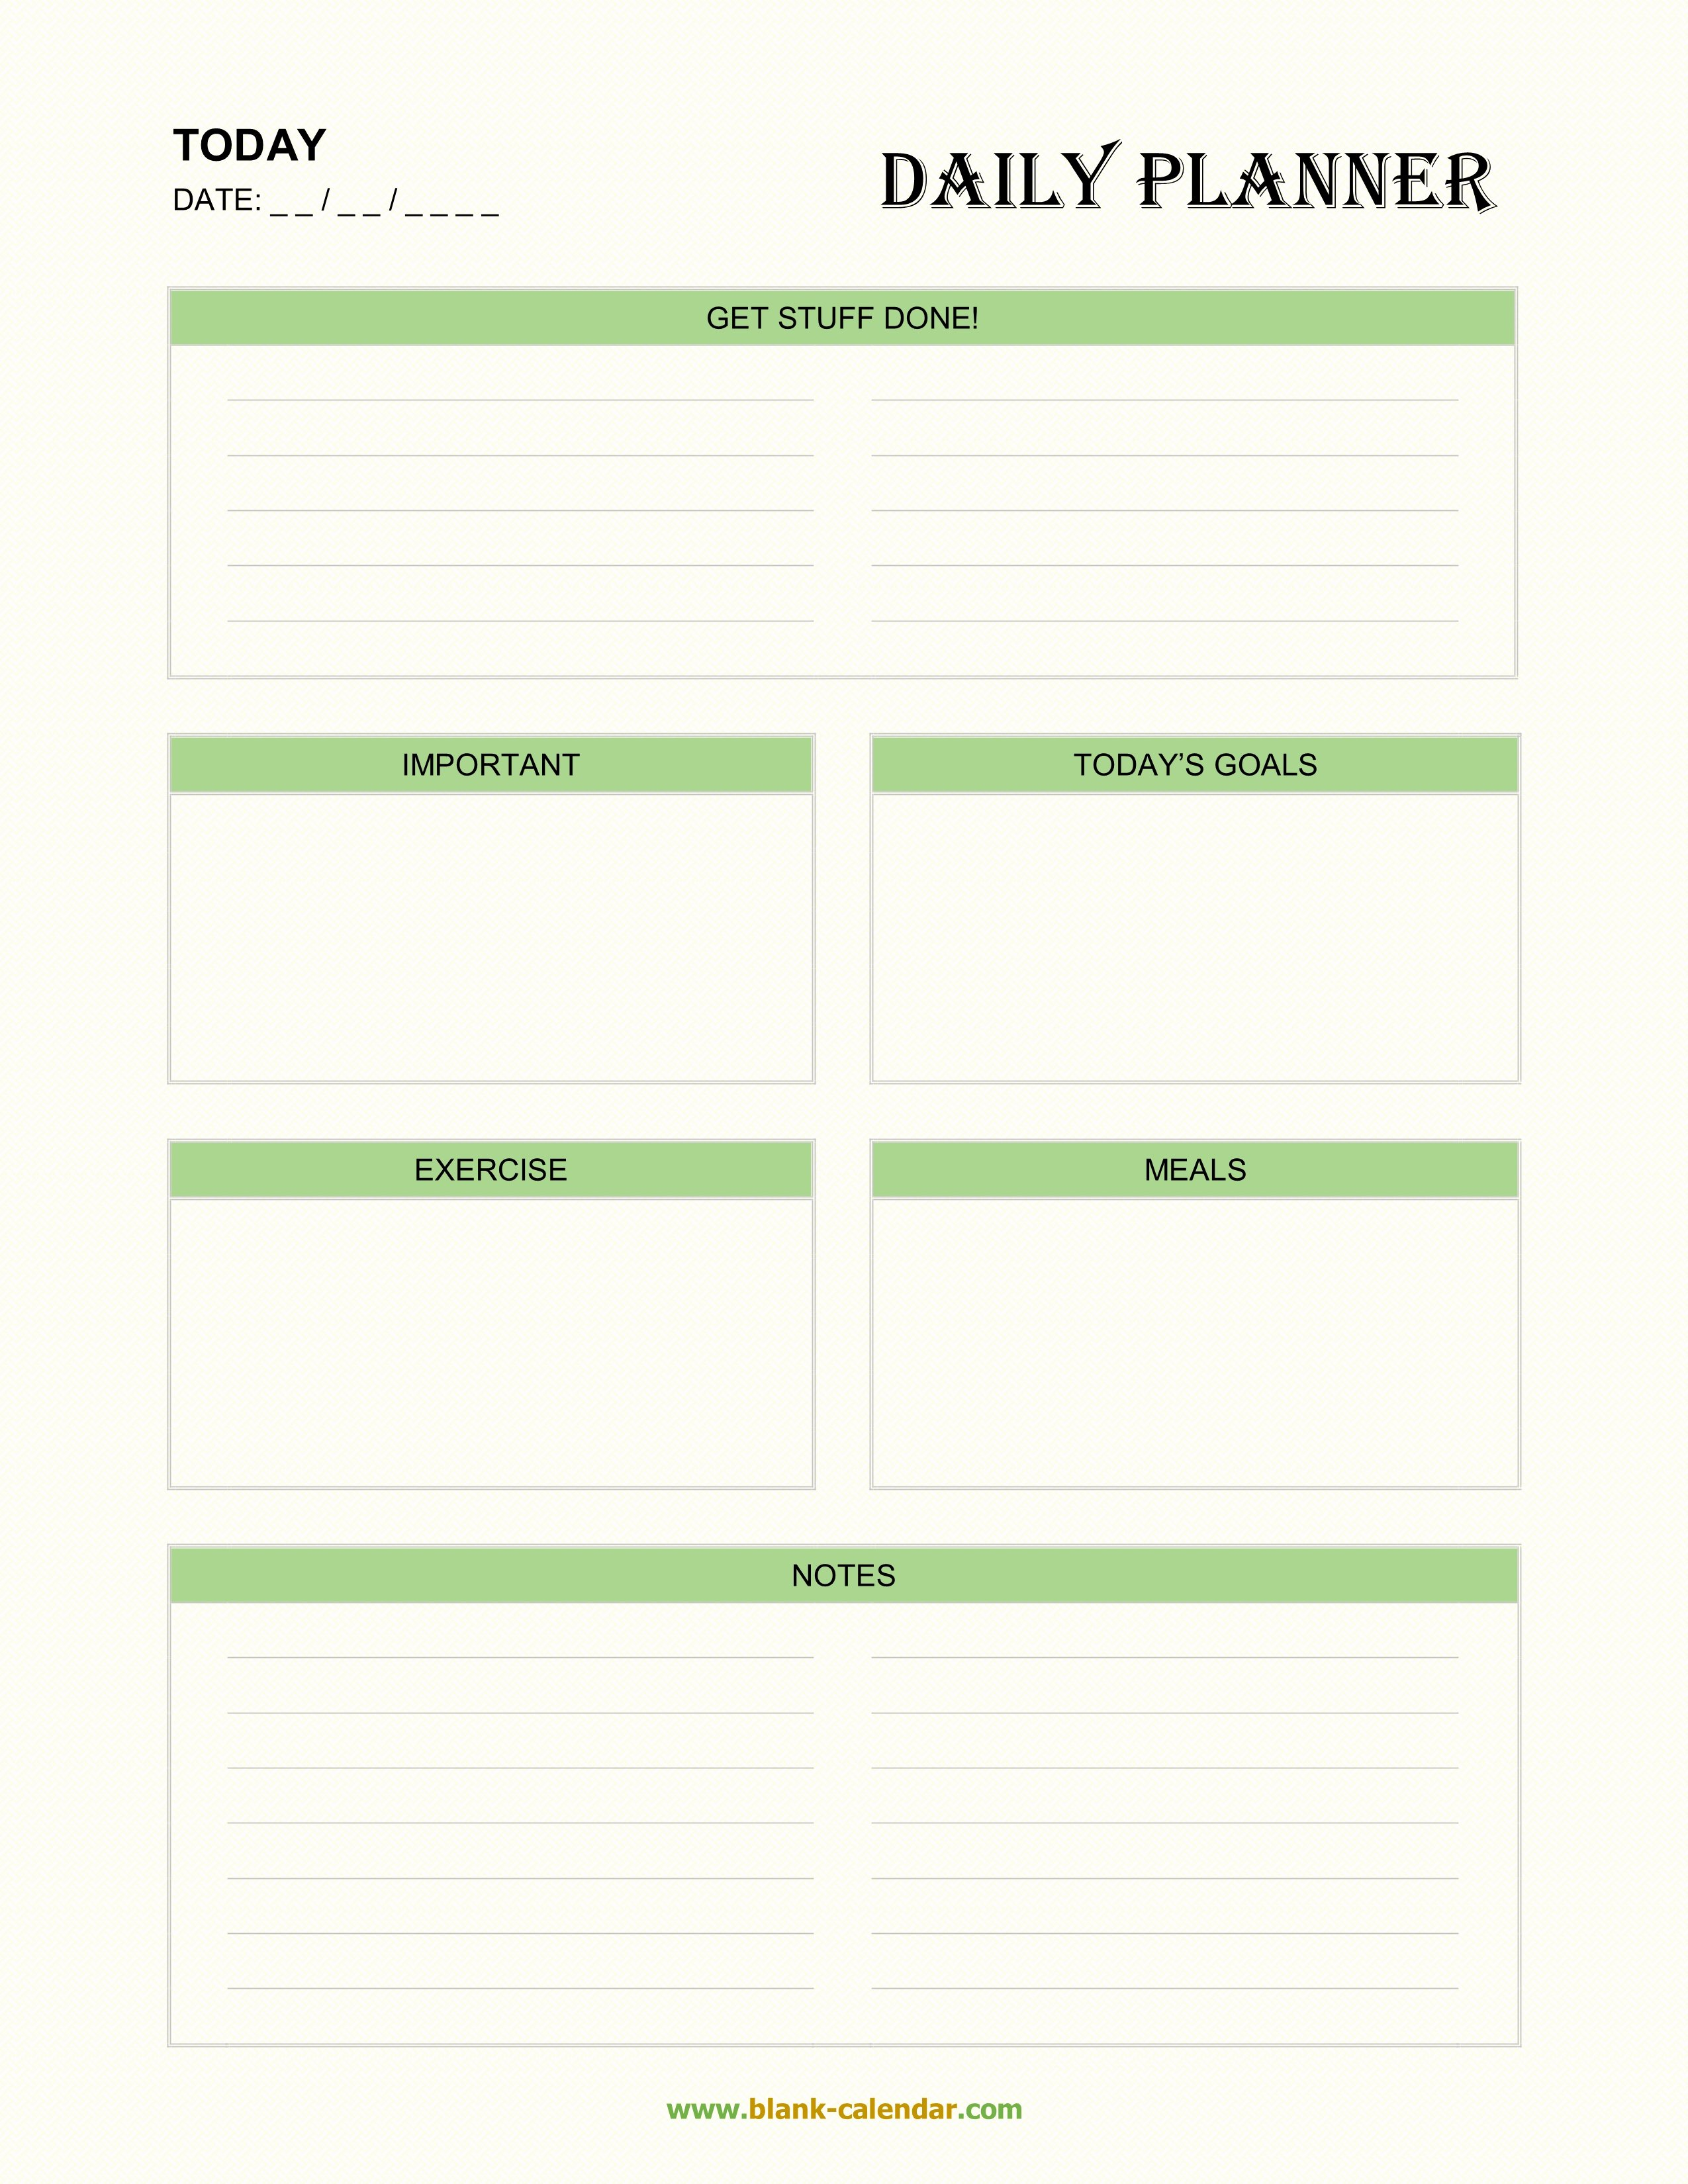 Daily Planner Template Word Inspirational Daily Planner Templates Word Excel Pdf